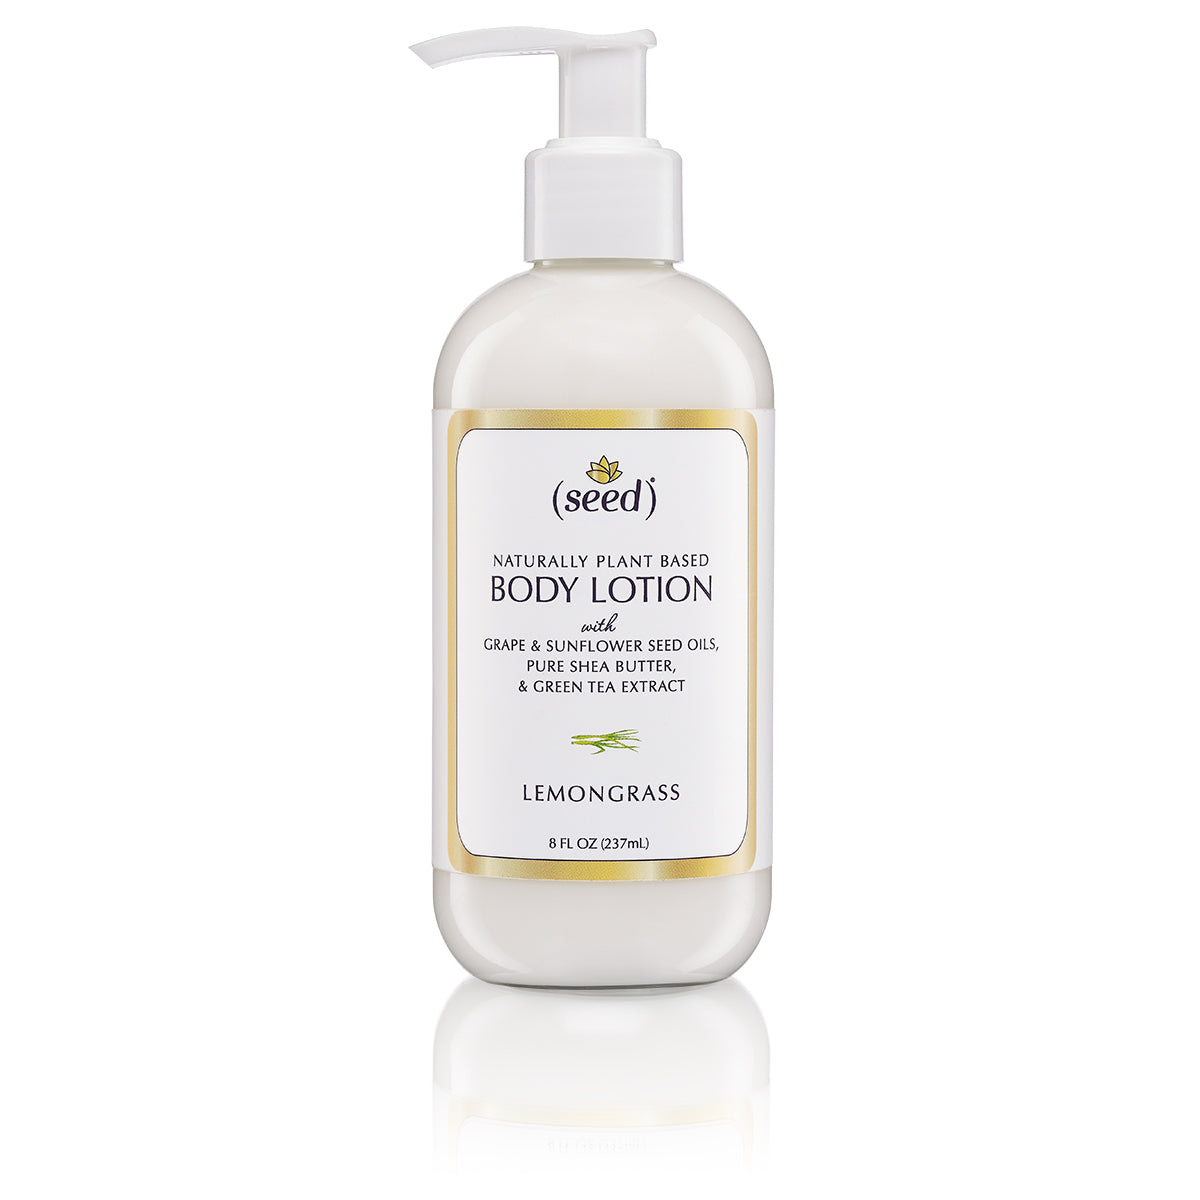 Seed Lemongrass Body Lotion with Grape and Sunflower Seed Oils, Shea Butter and Green Tea Extract, Lemongrass Essential Oil